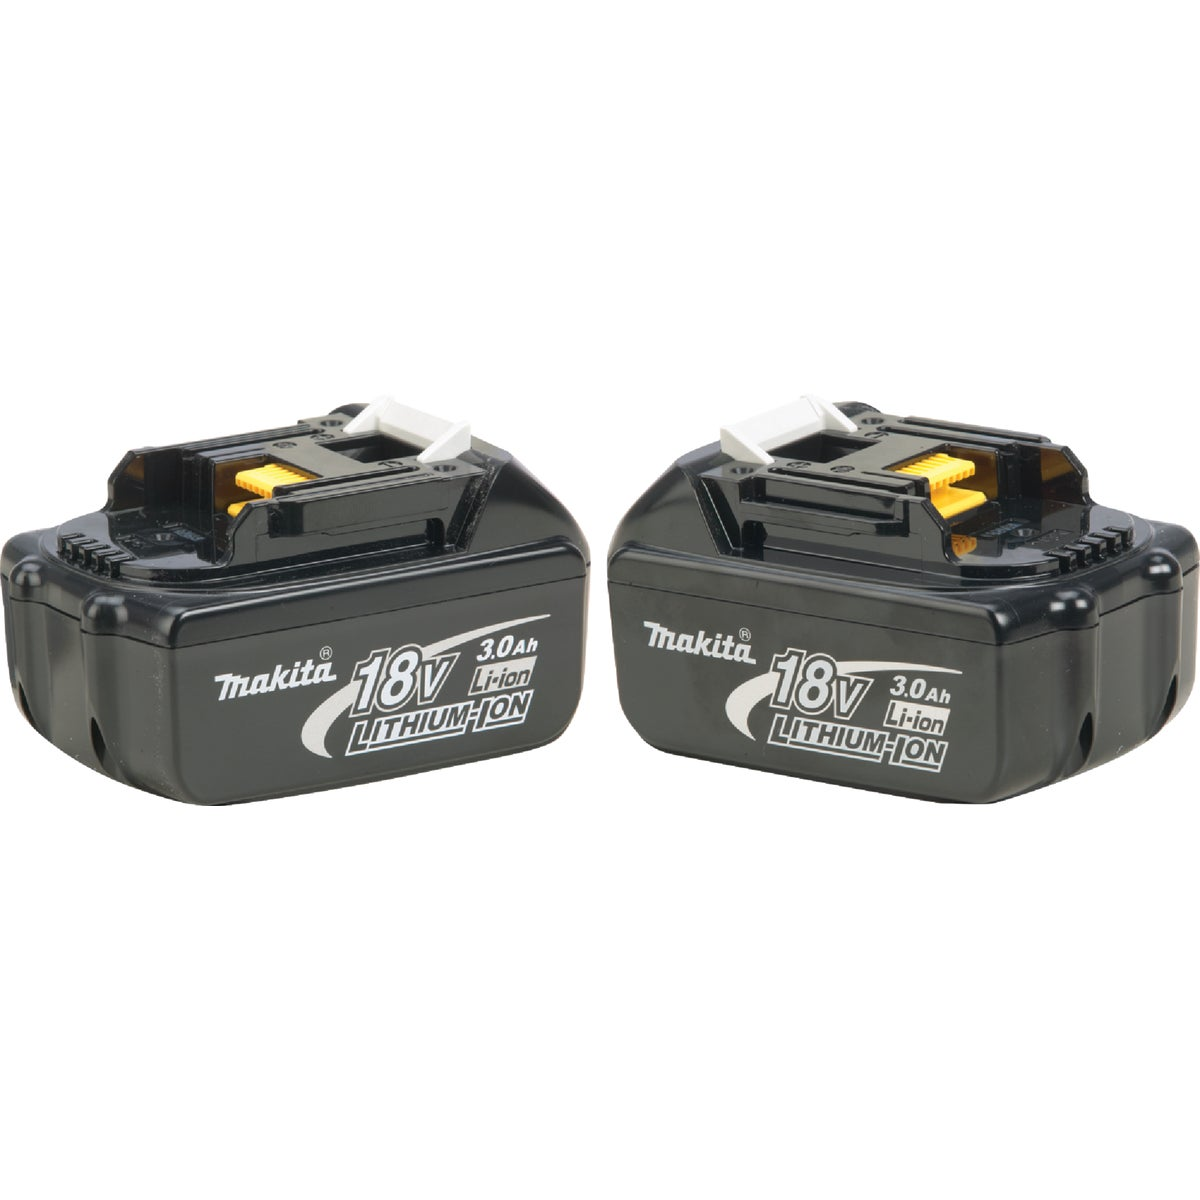 2PK 18V LXT BATTERY - BL1830-2 by Makita Usa Accessory